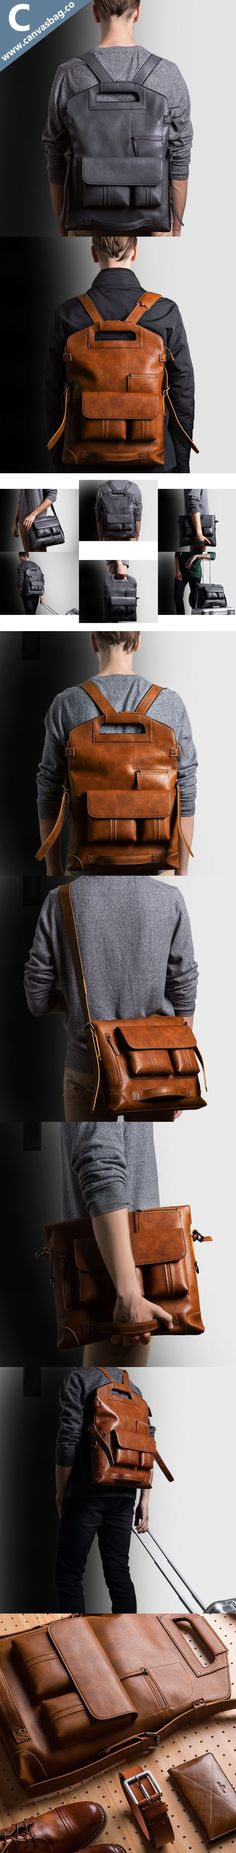 Co : Leather Convertible Backpack - Canvas Bag Leather Bag CanvasBag. Men's Backpack, Leather Backpack, Fashion Bags, Mens Fashion, Cooler Look, Convertible Backpack, Leather Working, Leather Men, Leather Bags